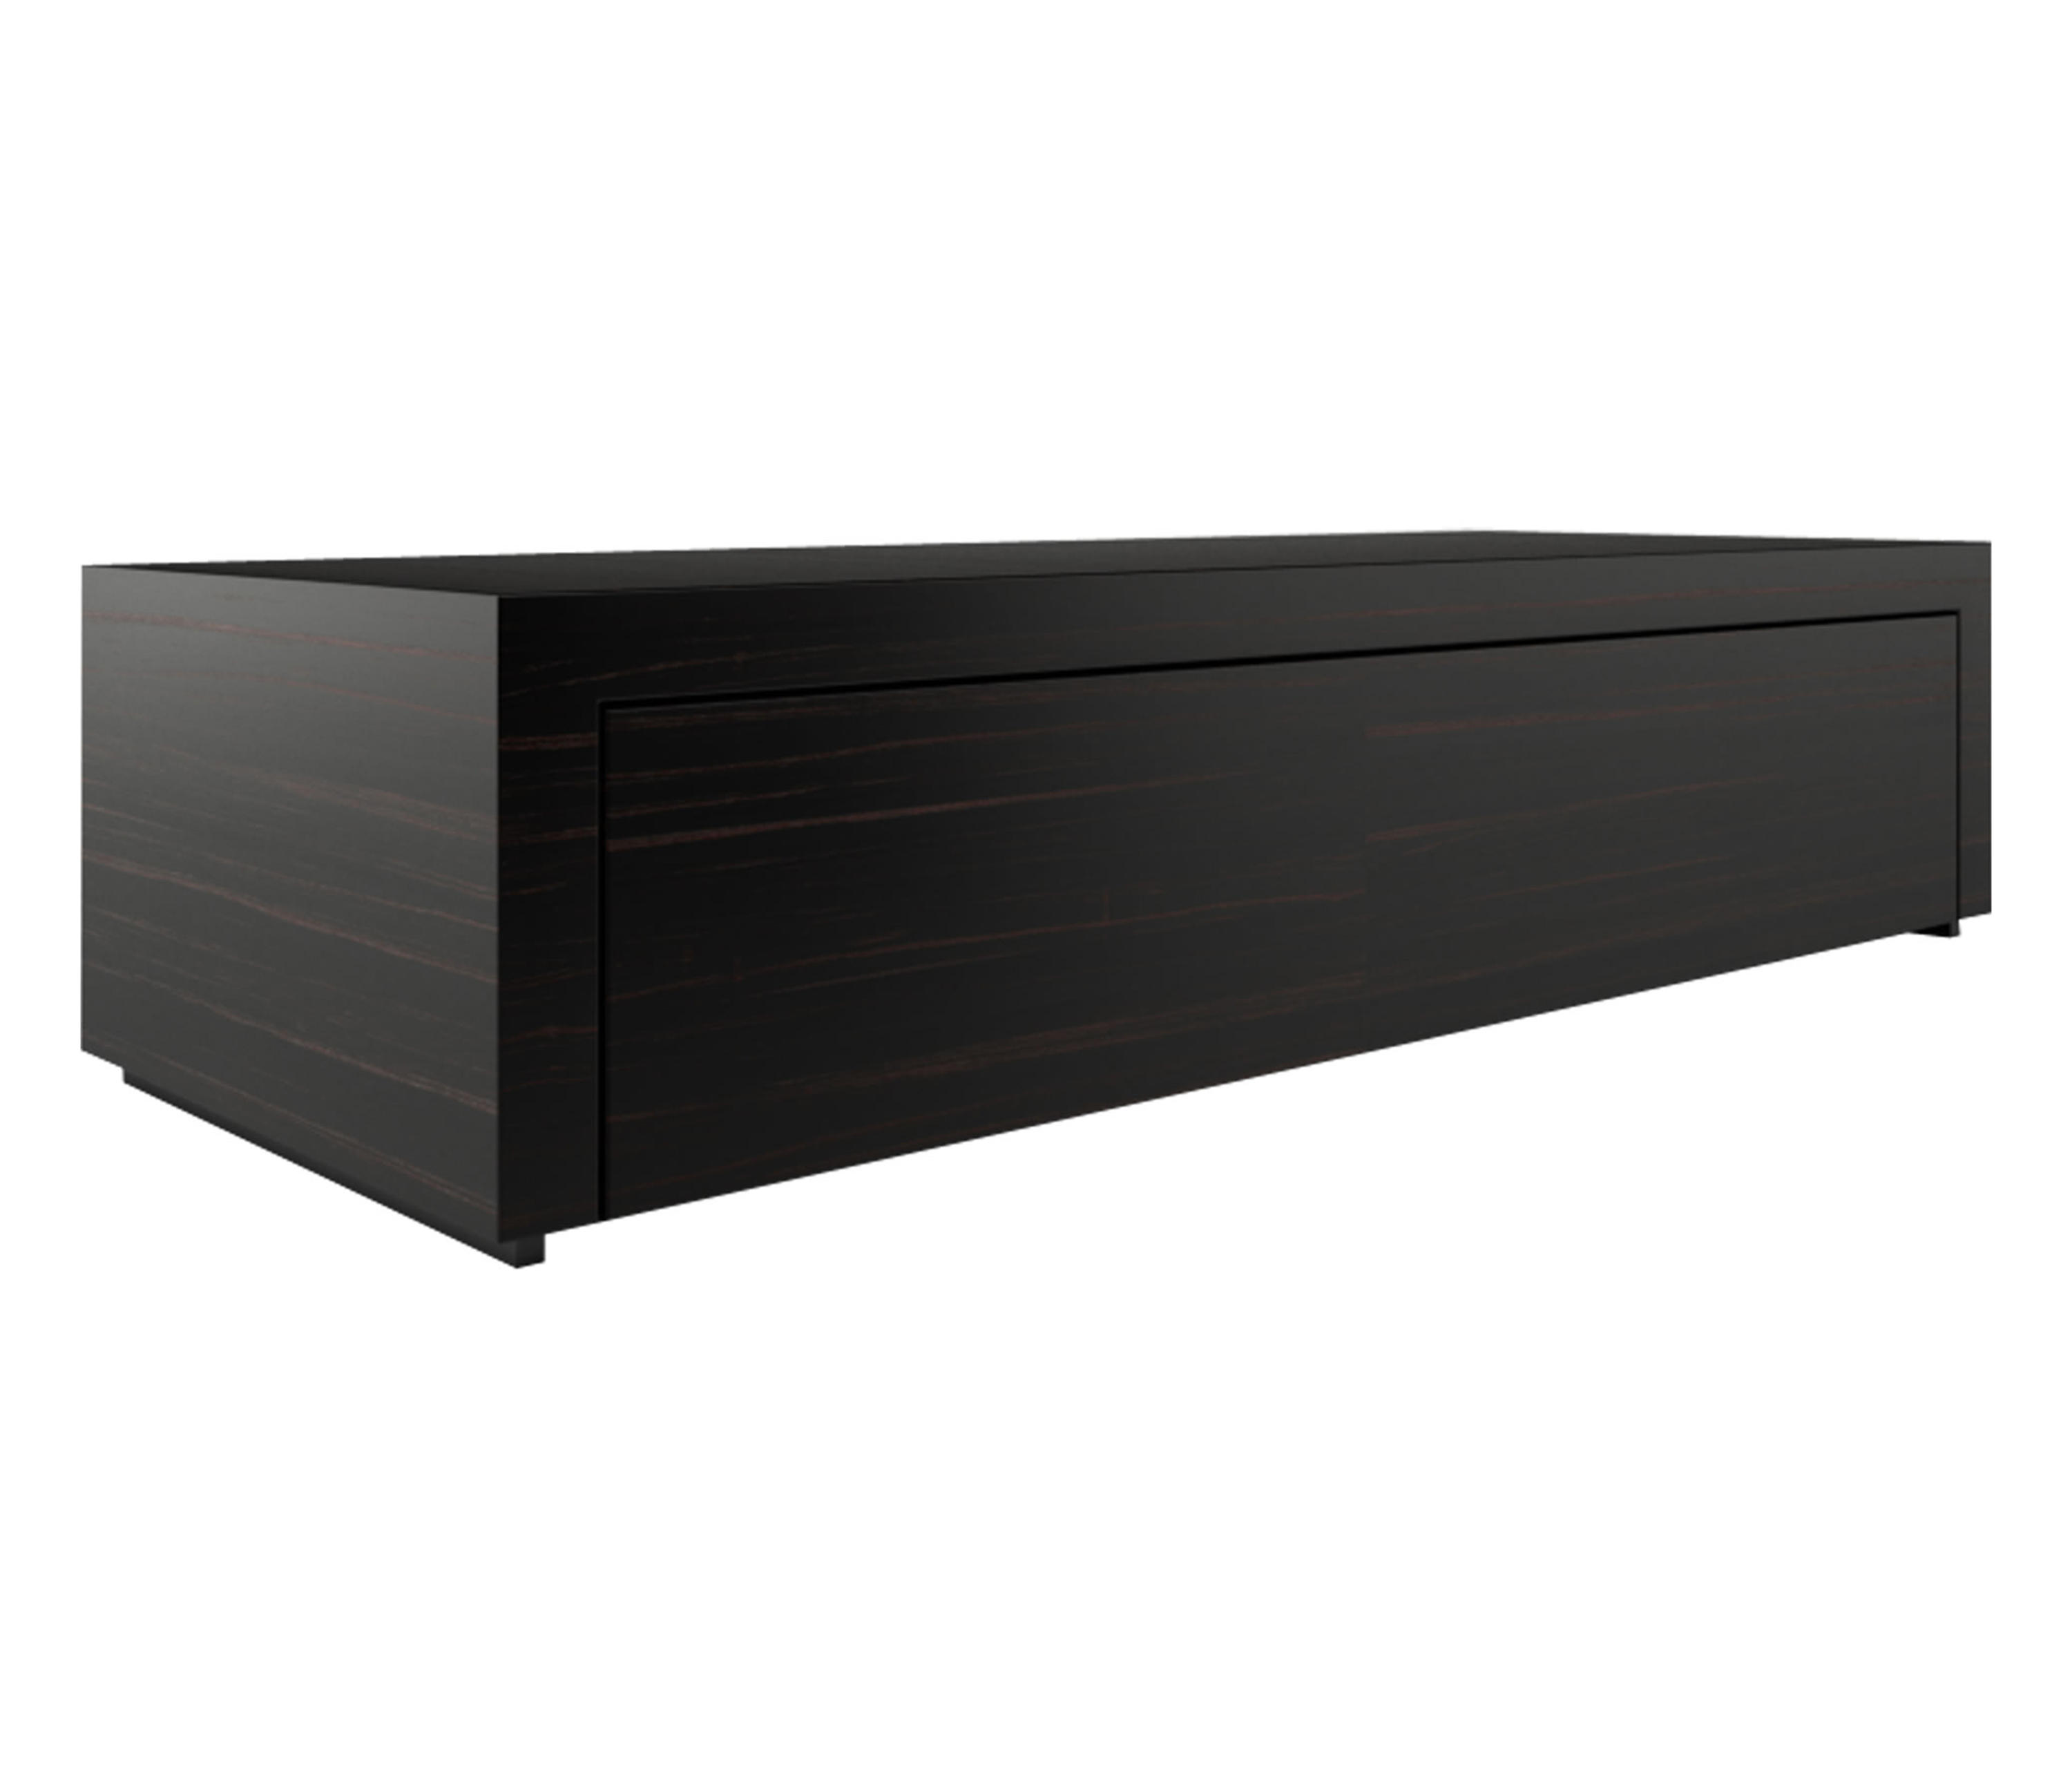 repositio tv hifi sideboard sideboards from rechteck architonic. Black Bedroom Furniture Sets. Home Design Ideas